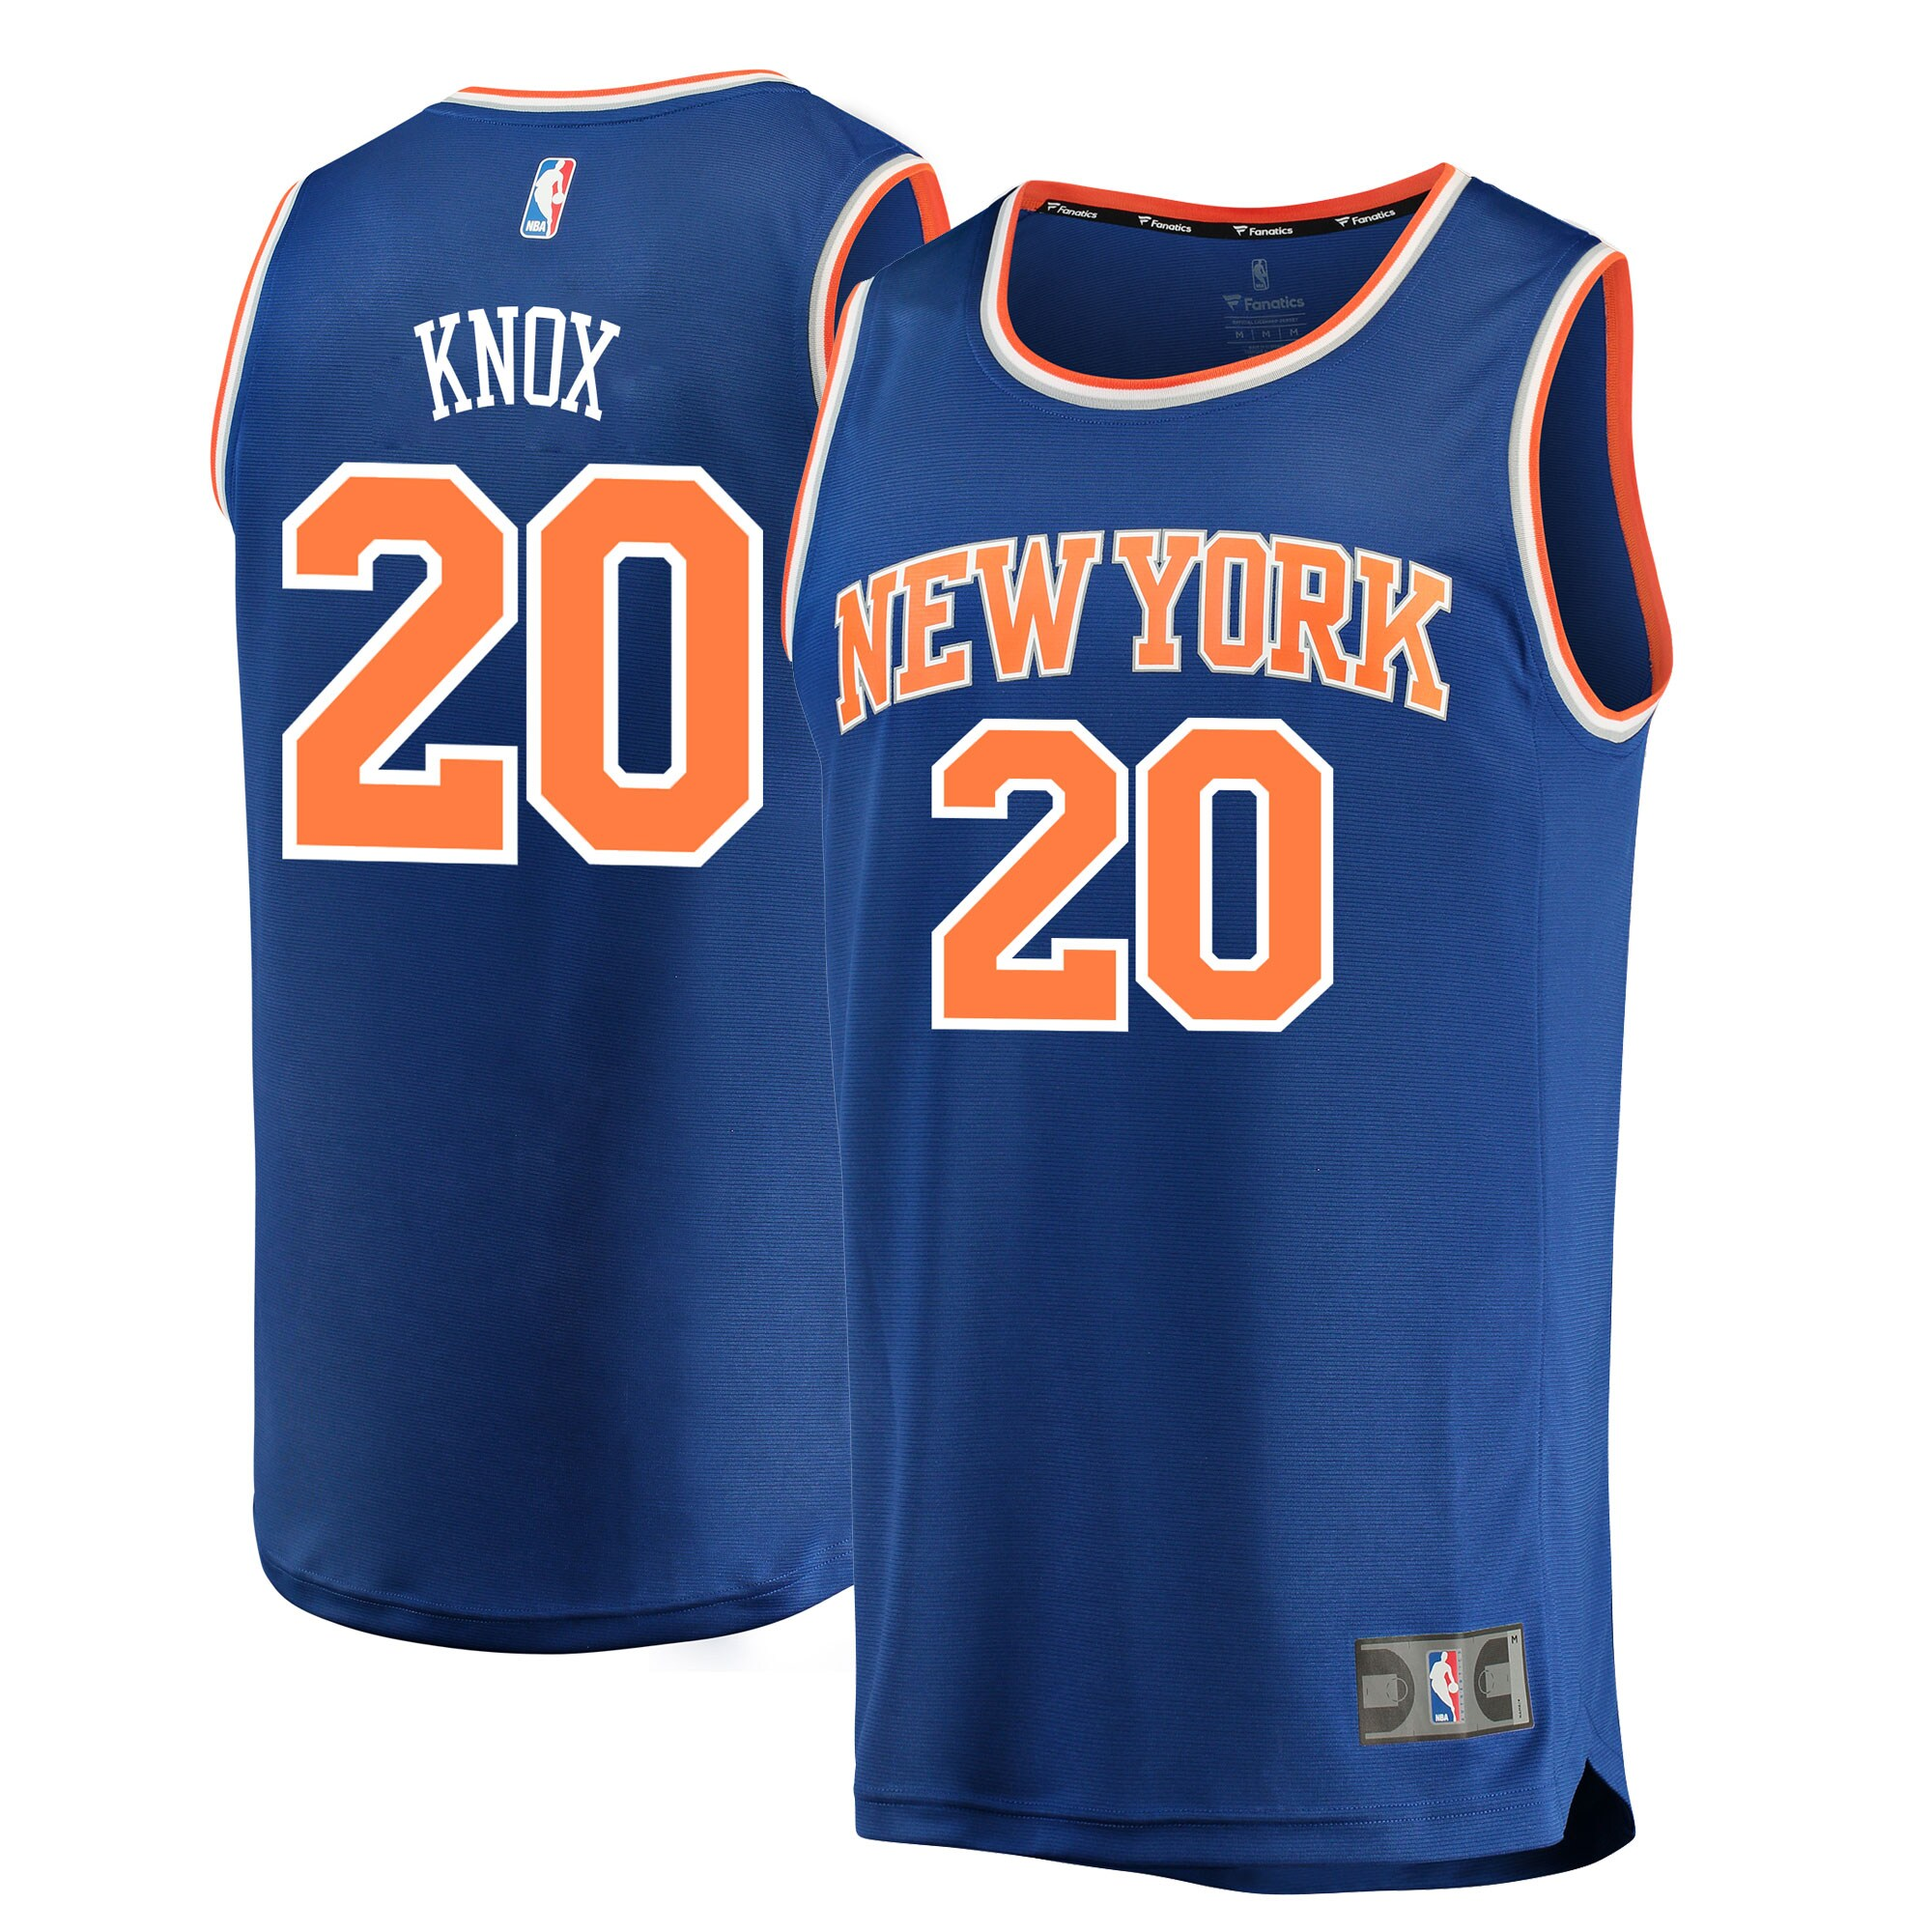 Kevin Knox New York Knicks Fanatics Branded 2018 NBA Draft First Round Pick Fast Break Replica Jersey Blue - Icon Edition